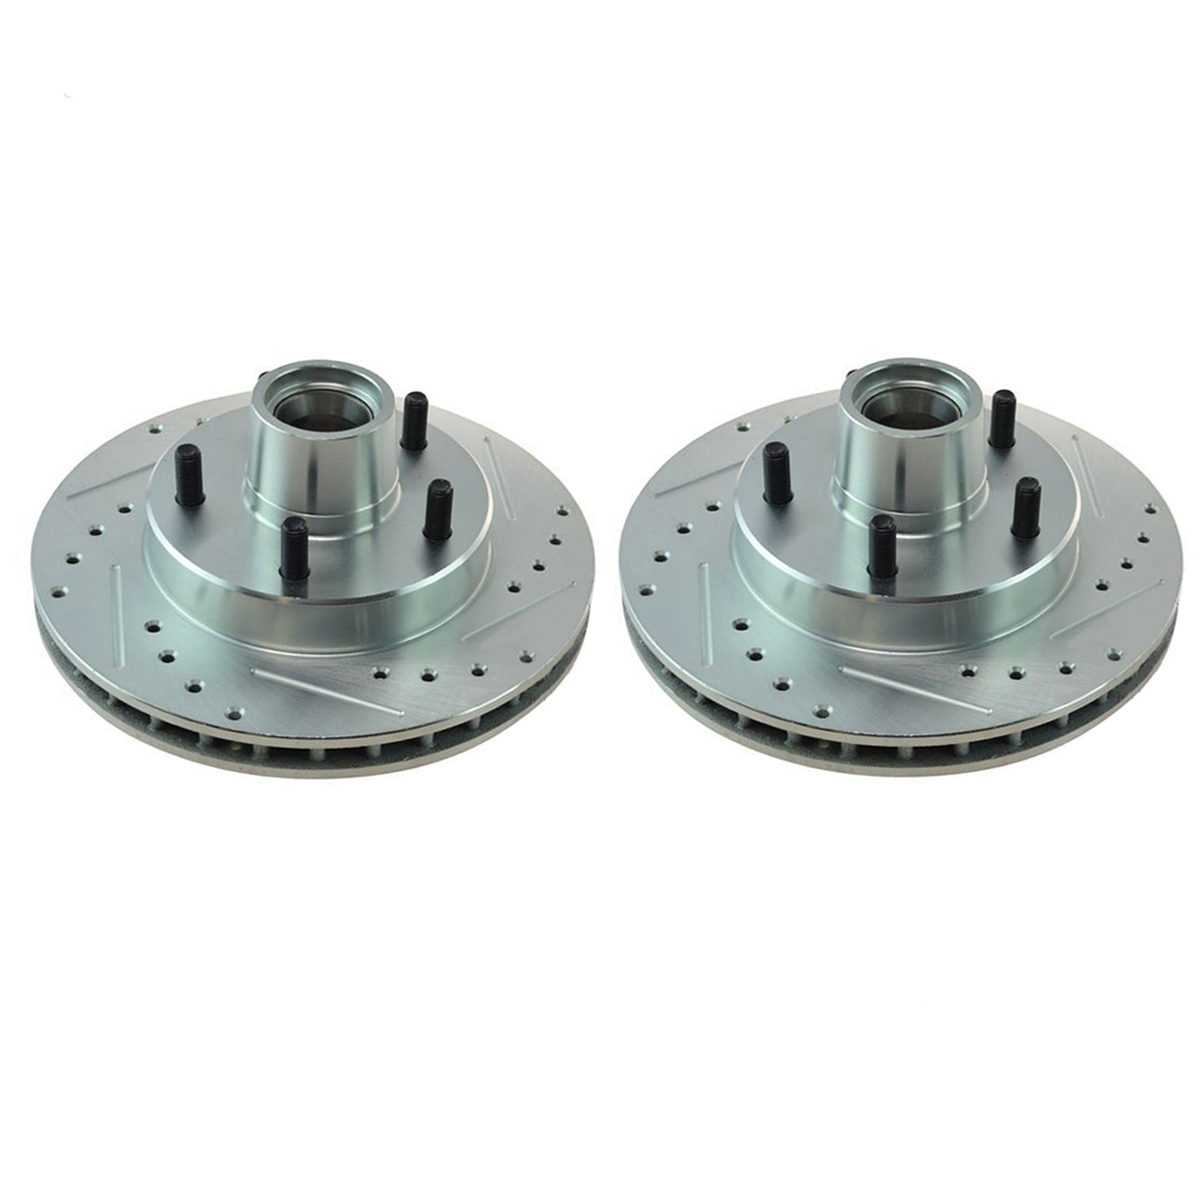 Pair (2) Front 280 mm Drilled and Slotted Disc Brake Rotors for Chevelle El  Camino Cutlass Omega GTO - Detroit Axle